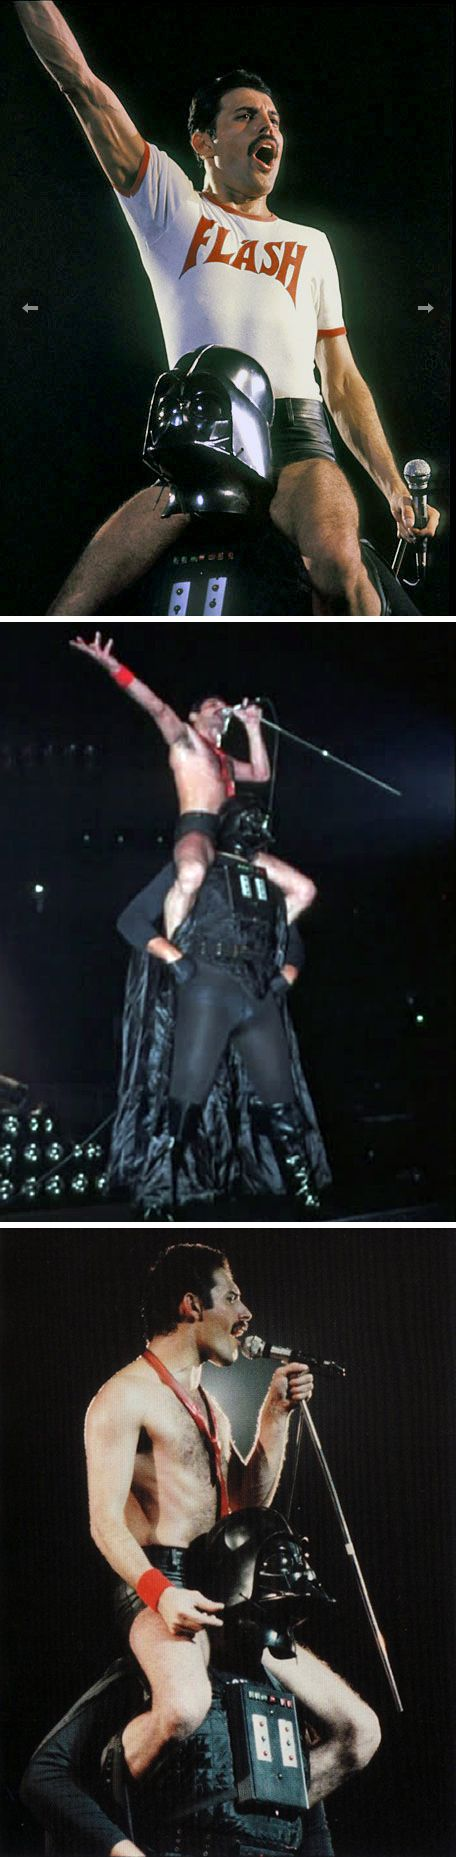 August 10, 1980, Houston, TX: On Queen's tour to promote their album The Game, Freddie Mercury closes the show with Darth Vader, photos by Tom Callins.